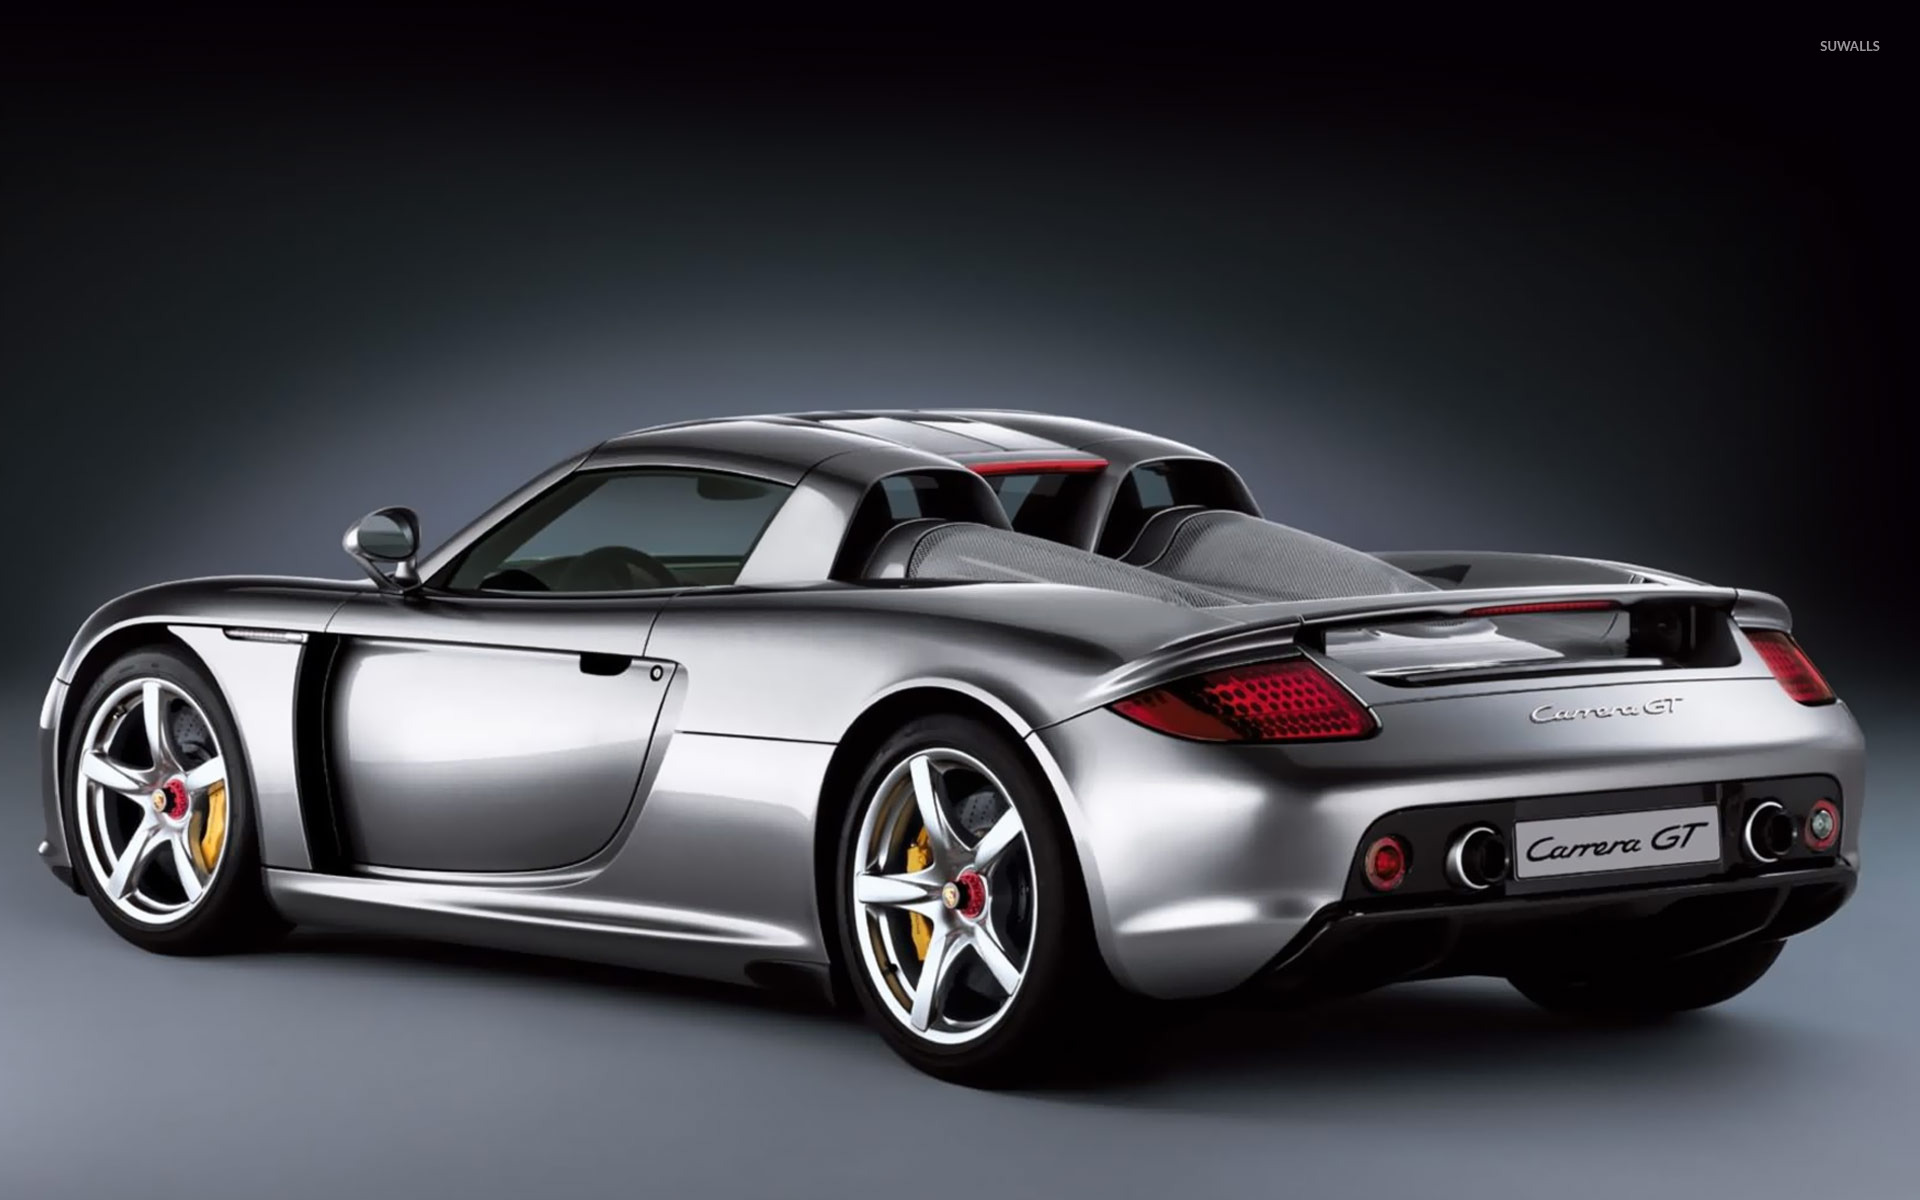 Porsche Carrera GT 4 Wallpaper 1920x1200 Jpg